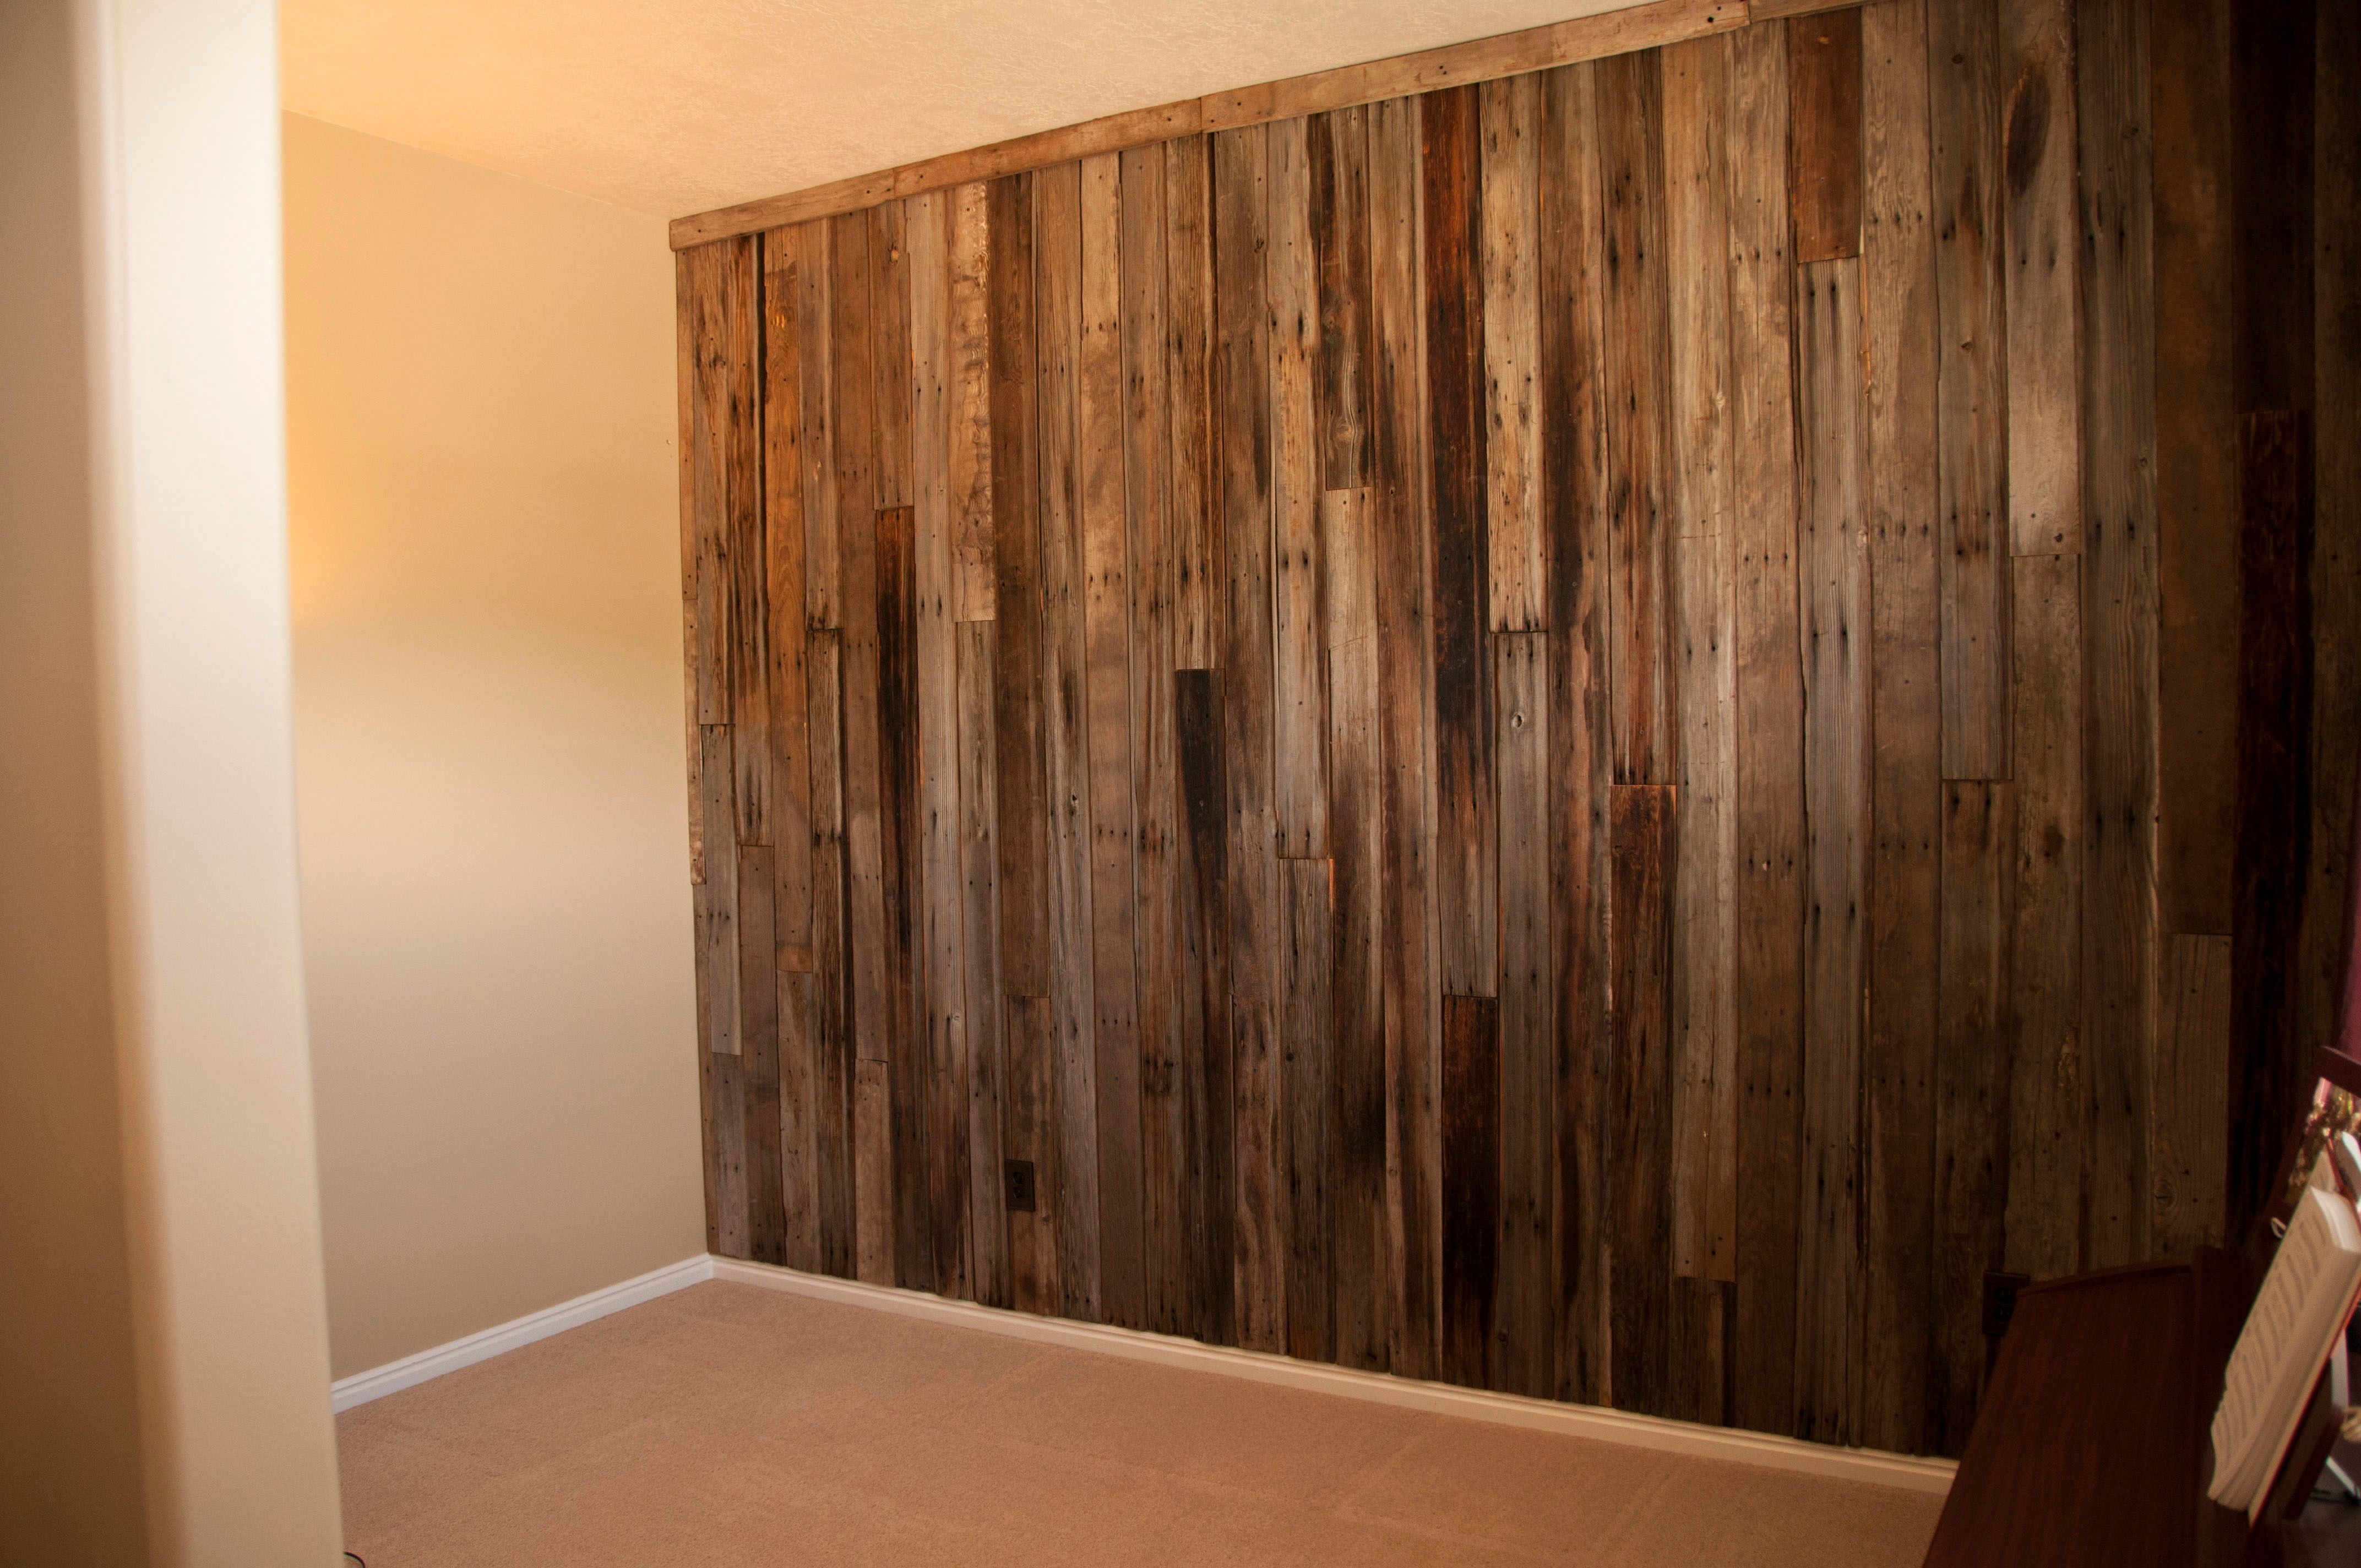 Barn Wood Wall Vertical Vs Horizontal Interior Design Pinterest